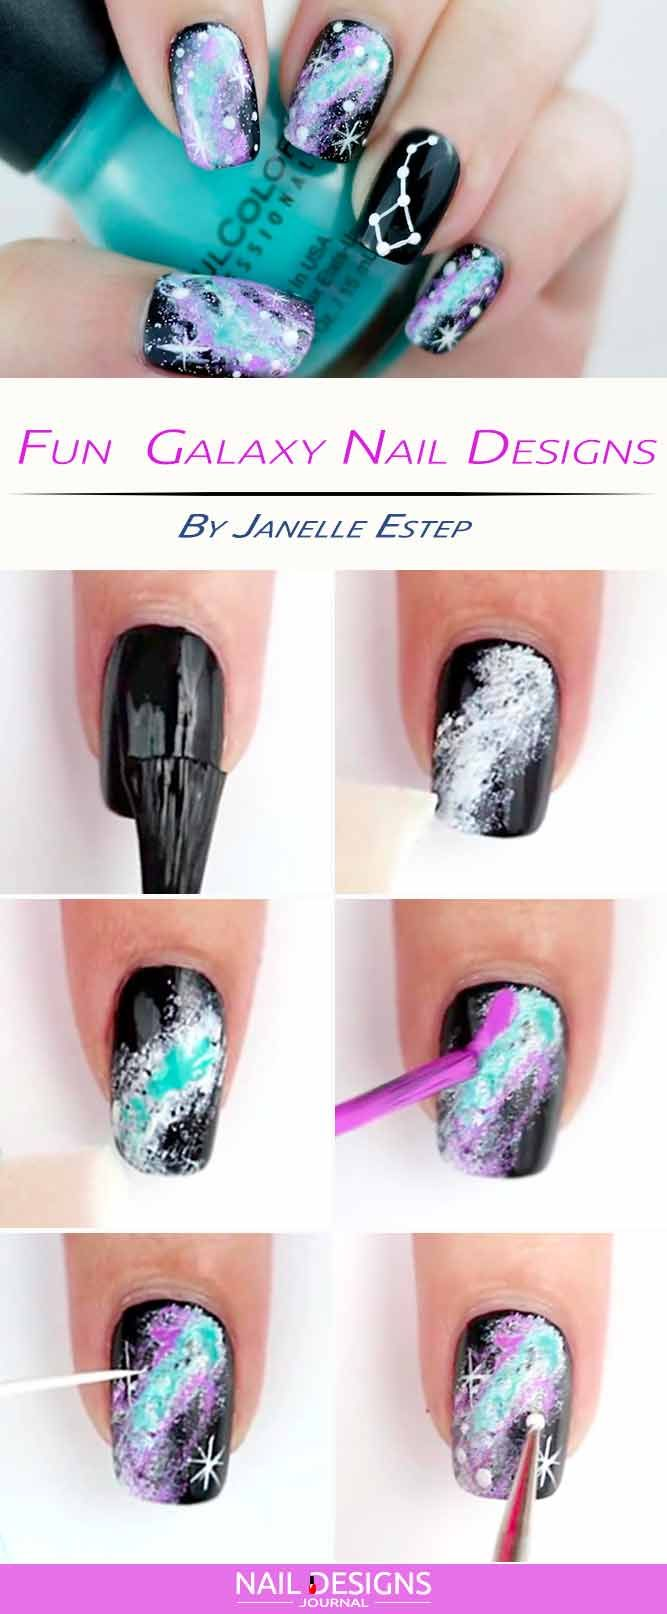 Fun Nail Designs That Are Easy To Do At Home | Tutorial nails, Fun ...